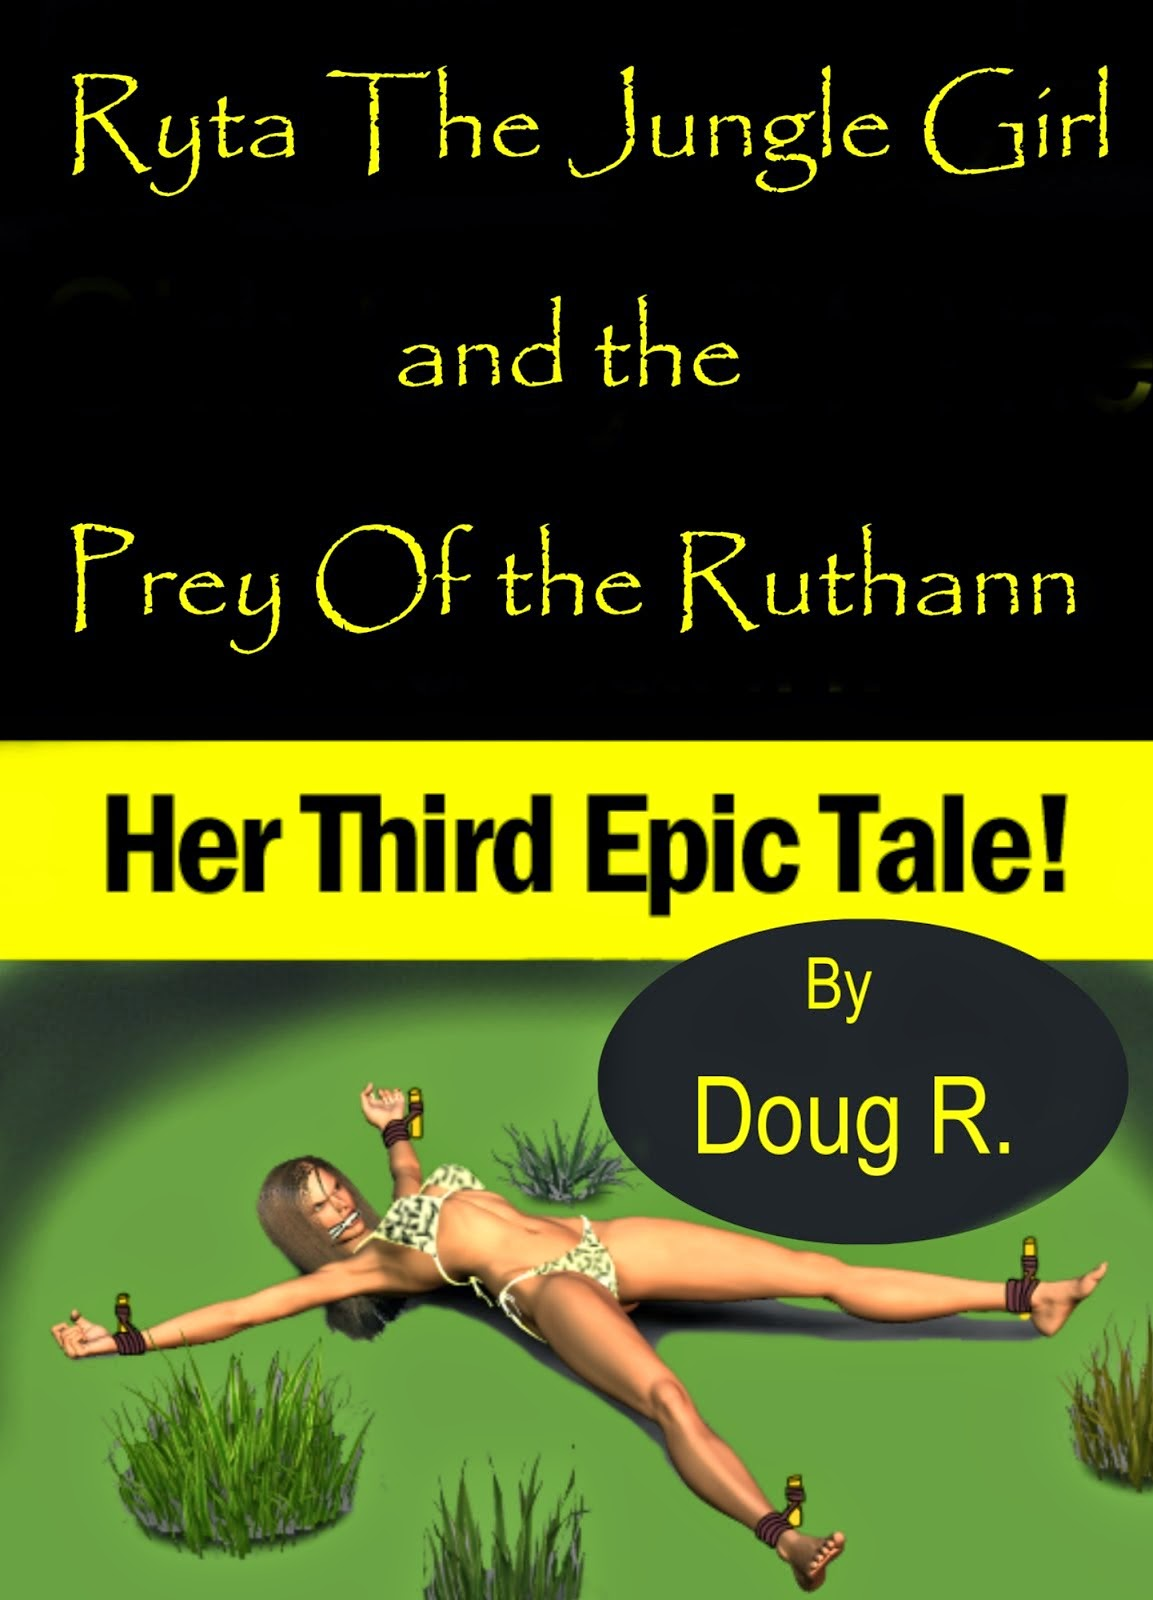 Ryta the Jungle Girl: Prey of the Ruthann